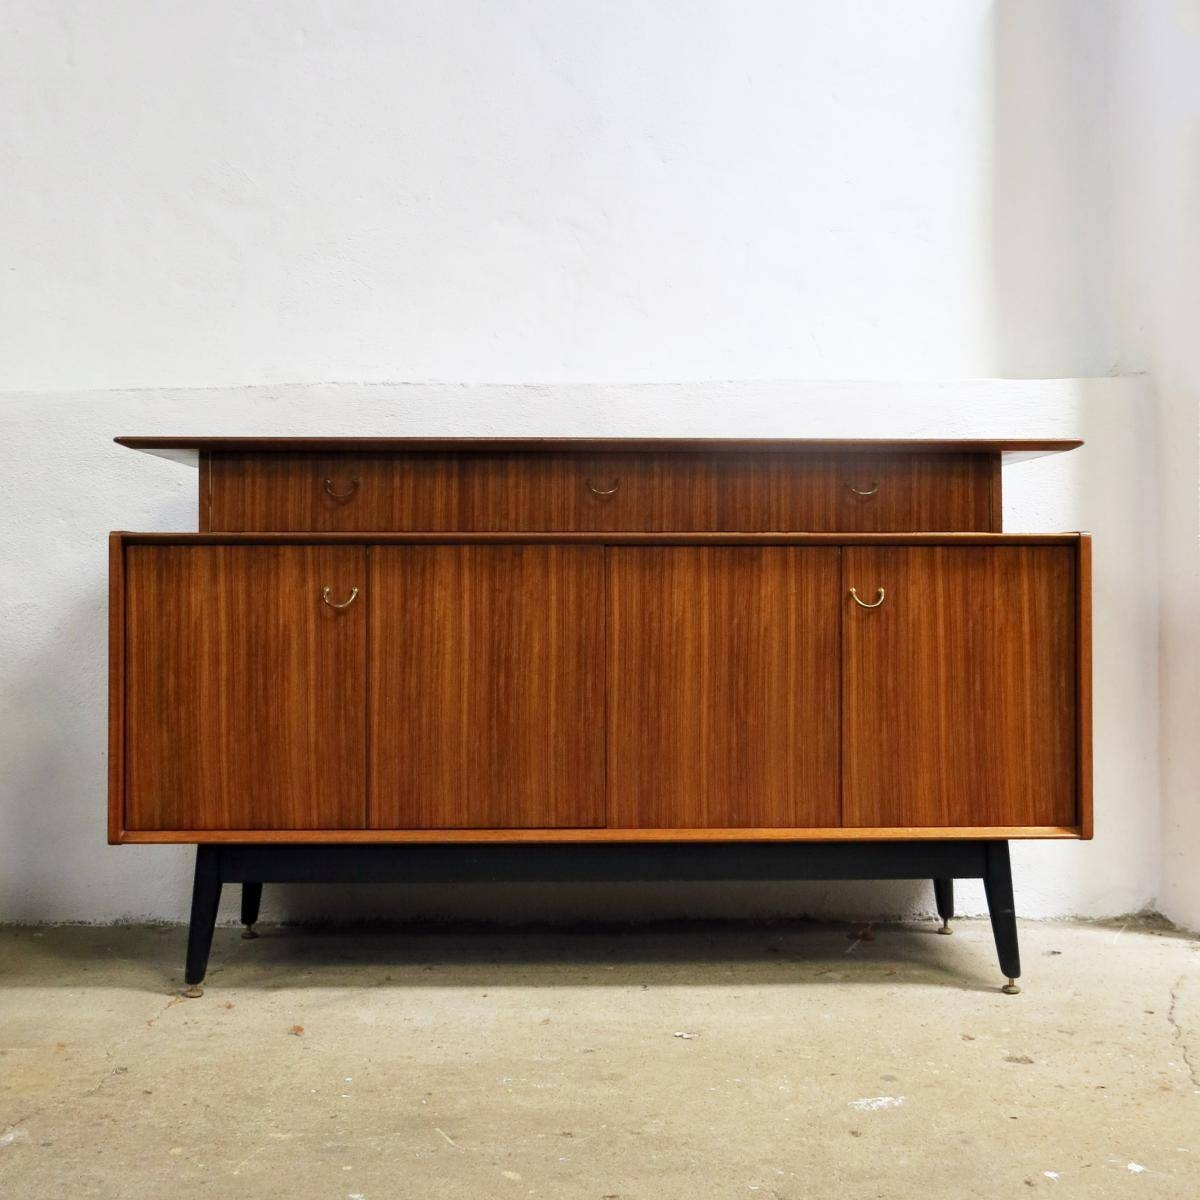 British Sideboard From G-Plan, 1950S For Sale At Pamono pertaining to G Plan Sideboards (Image 3 of 15)